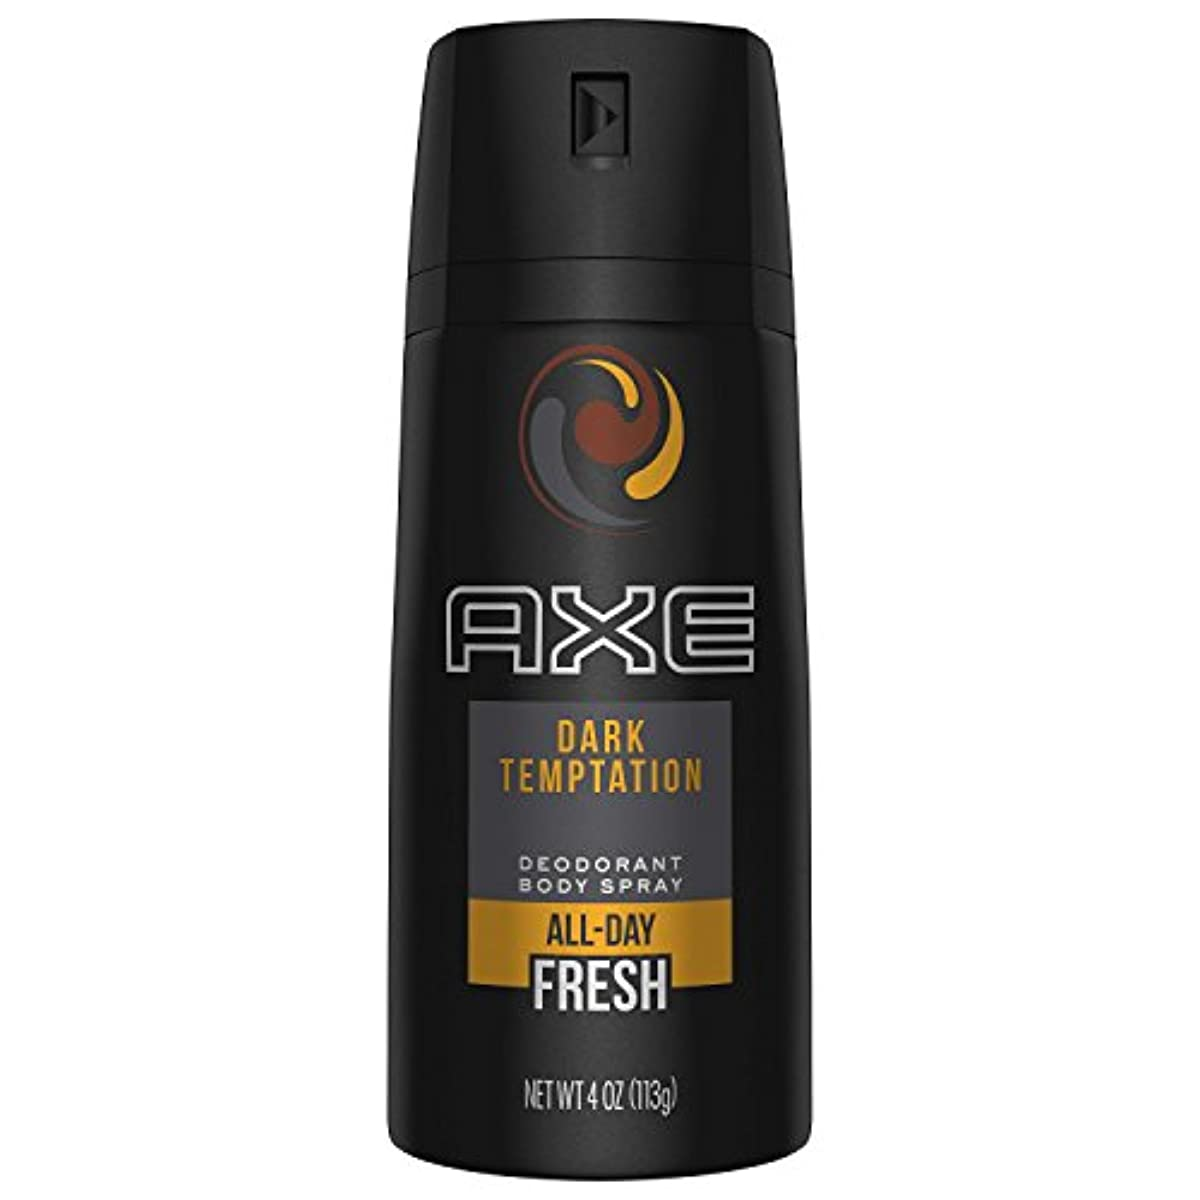 自然公園ポインタ原因AXE Dark Temptation Deodorant Body Spray 120 ml Deodorant Spray Men (並行輸入品)